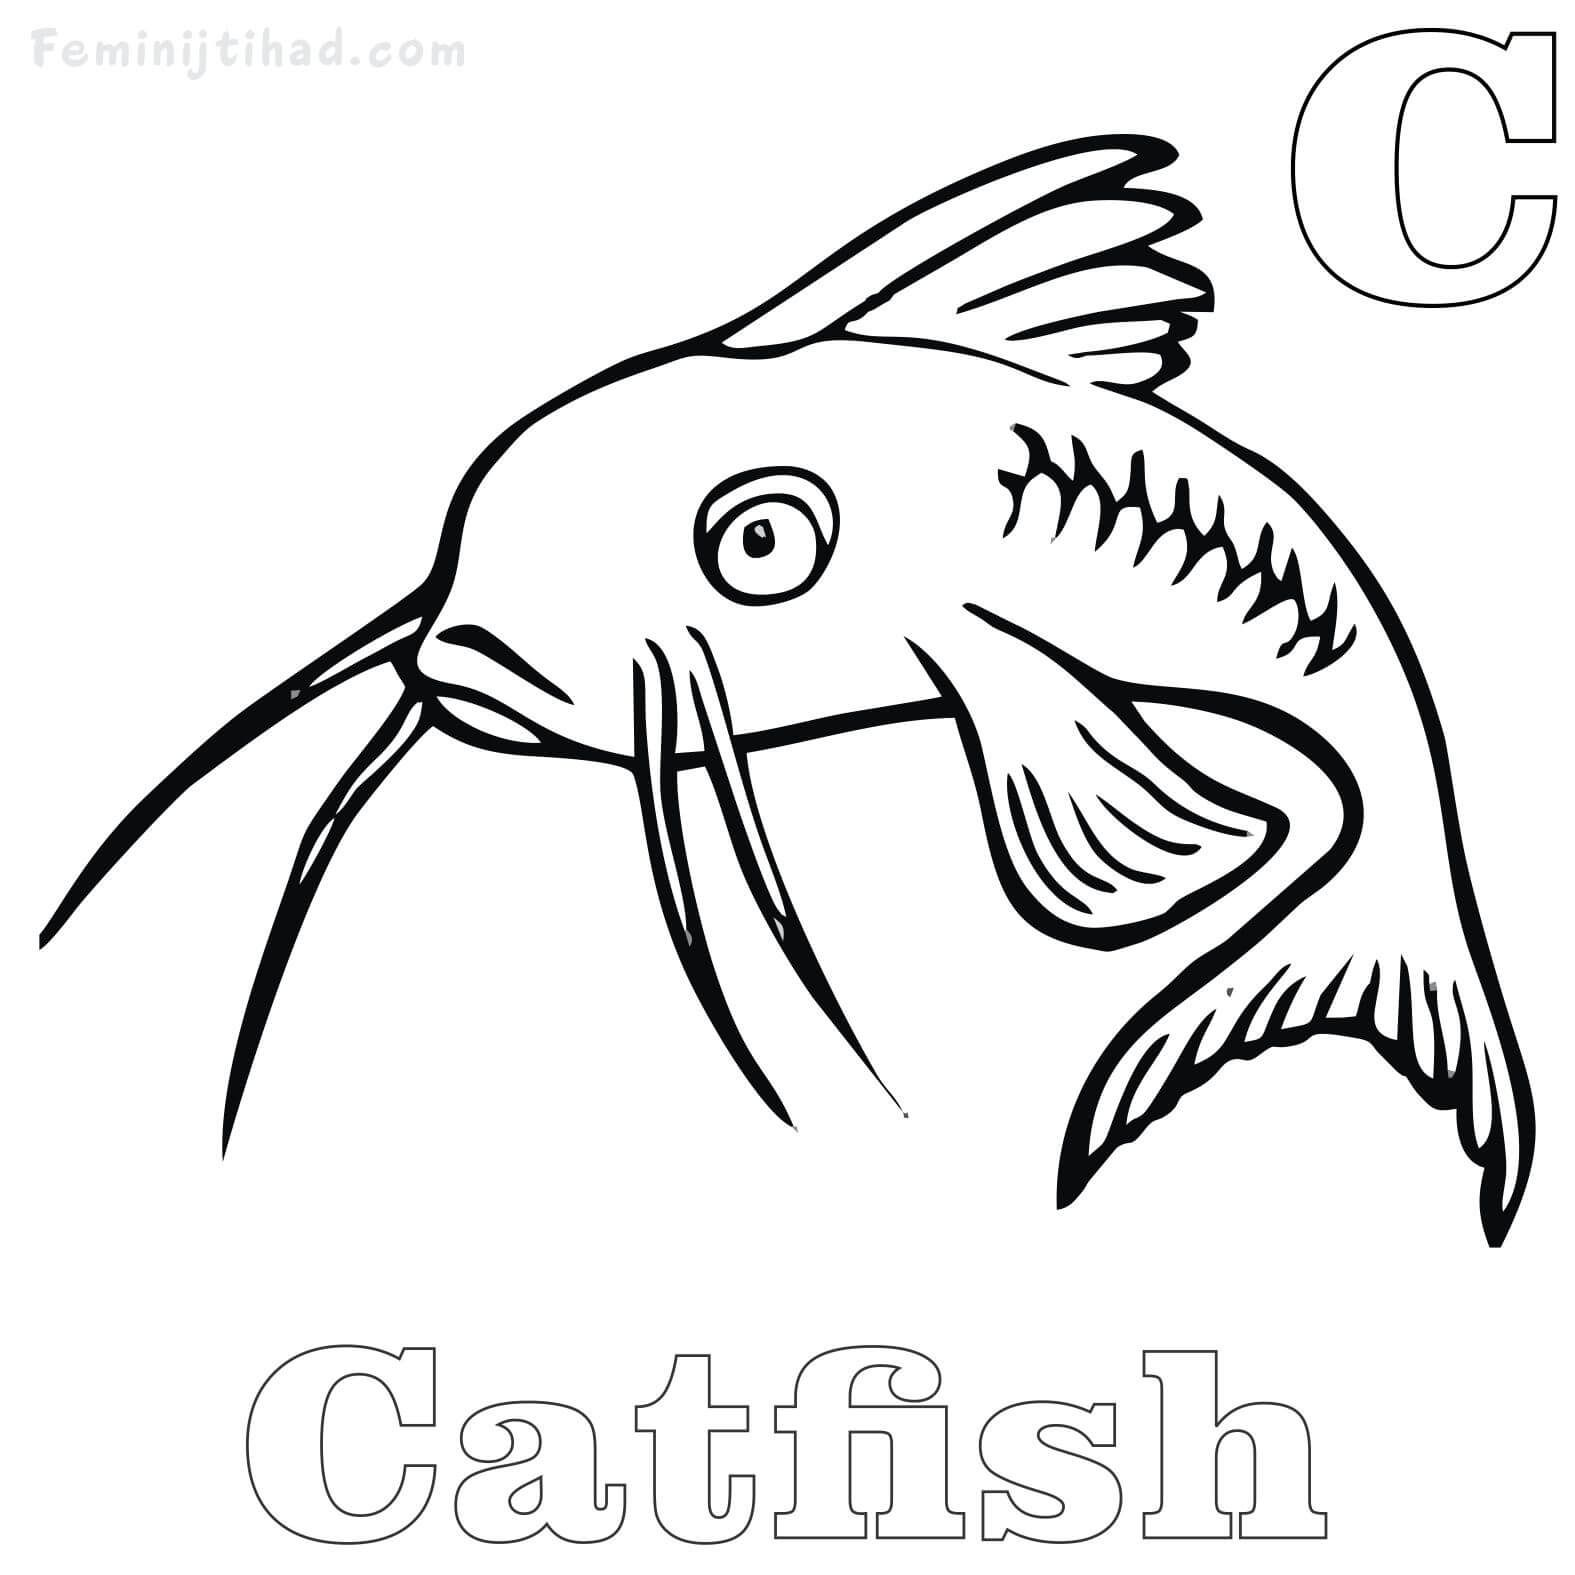 Free Coloring Pages With Best Printable Walking Catfish Coloring Pages